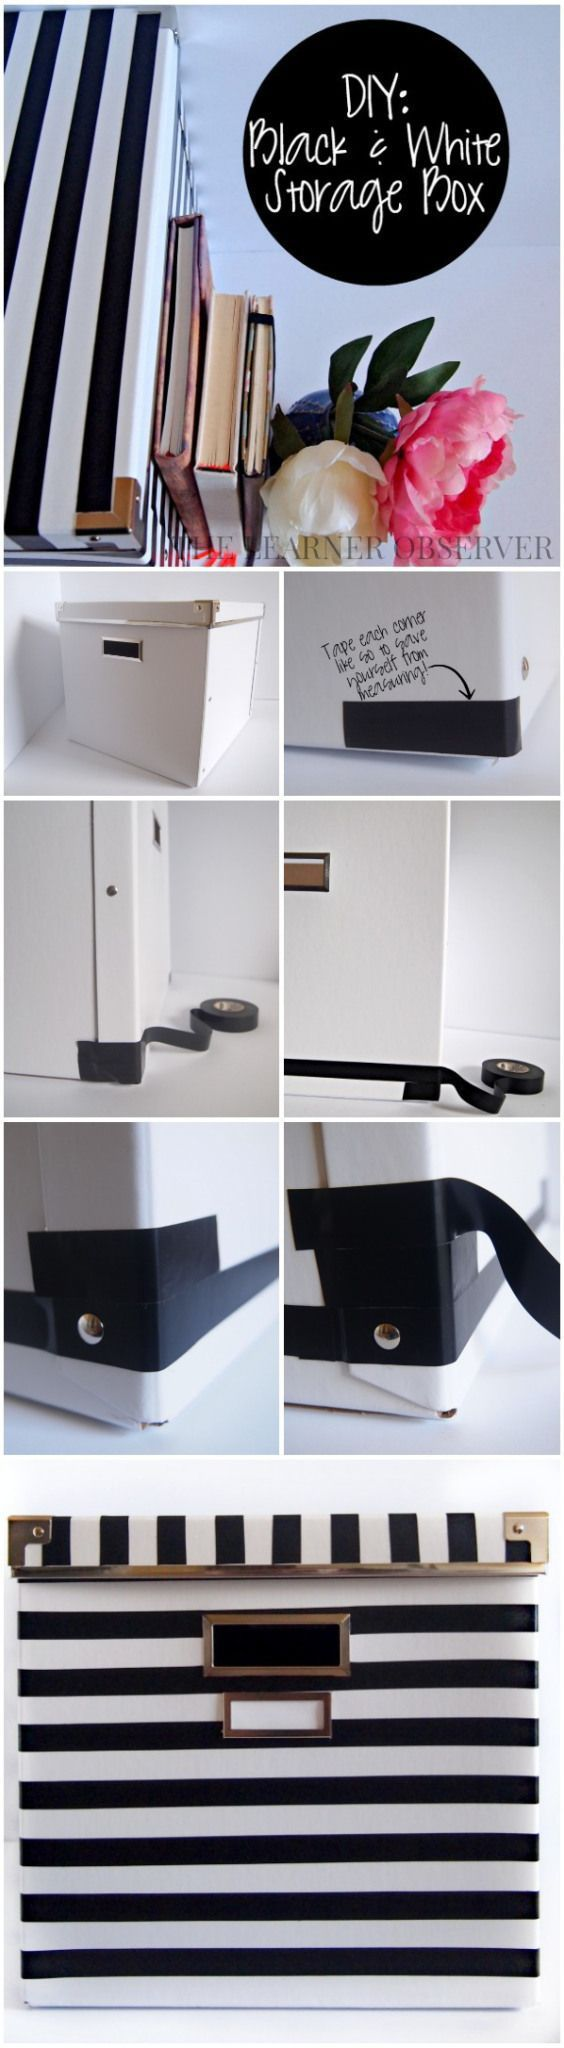 Diy ikea sewing table  Diy Crafts Ideas  Kate SpadeInspired Storage using an Ikea box and